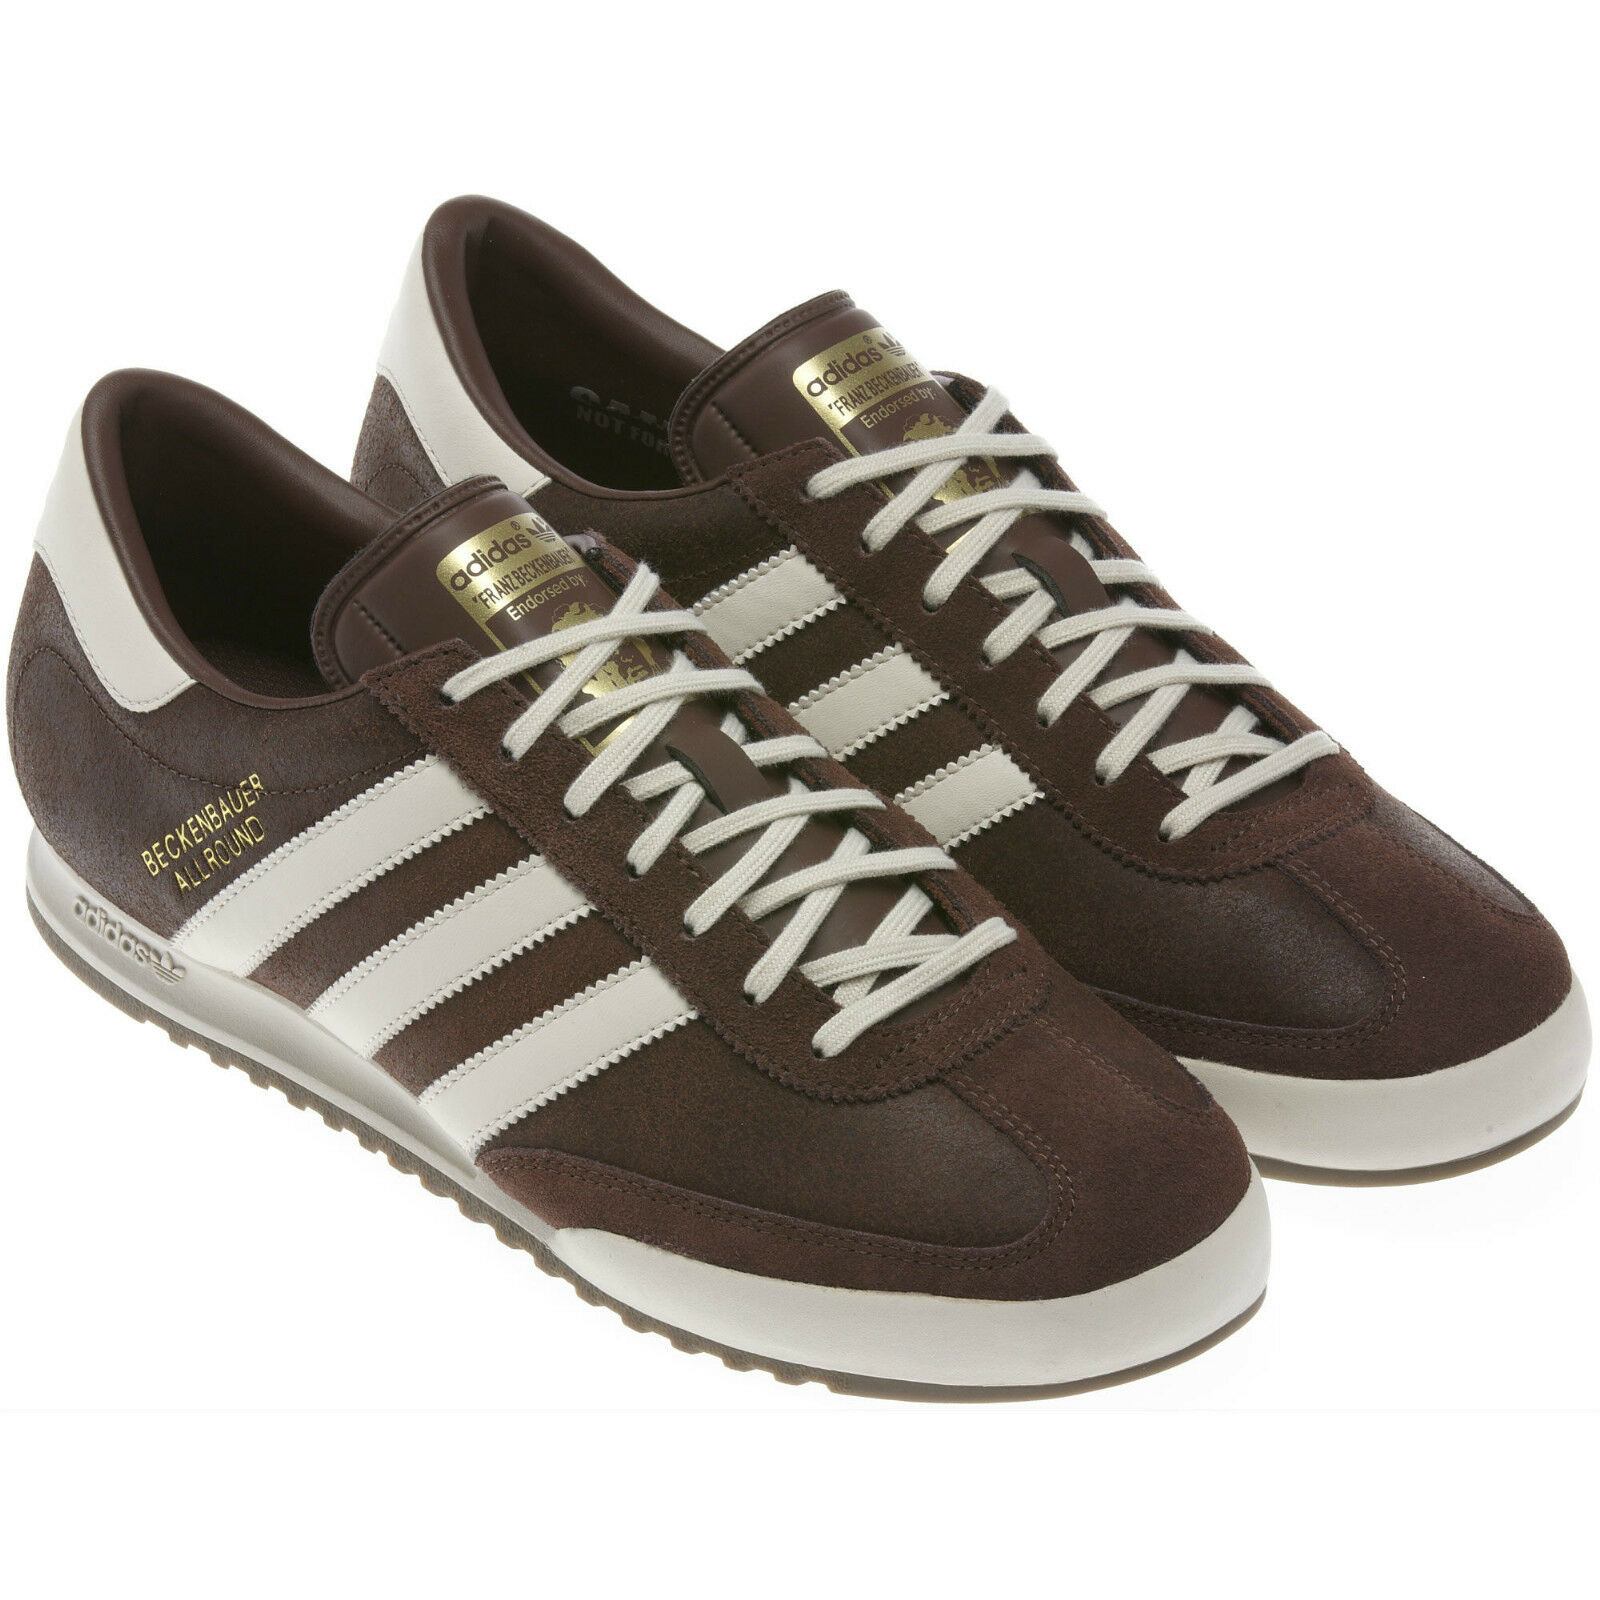 ADIDAS MENS BECKENBAUER ALLROUND SIZE 7 8 9 10 TRAINER SHOES RETRO SMART